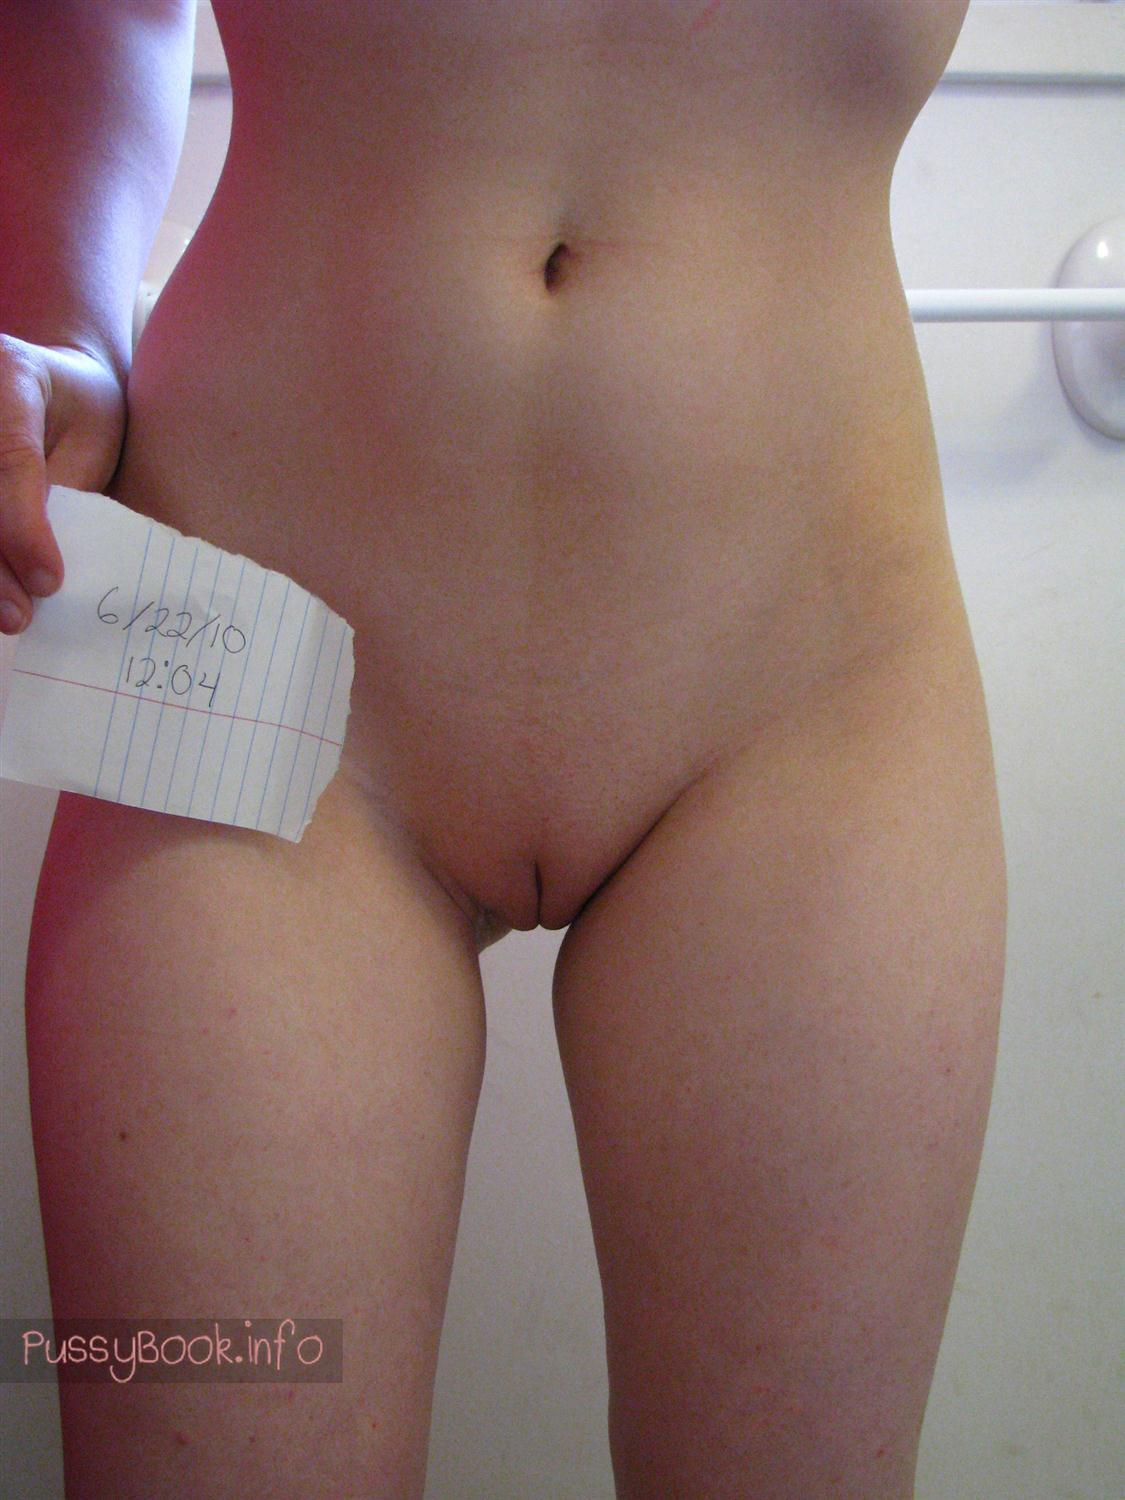 Amateur pussy pics Shaved